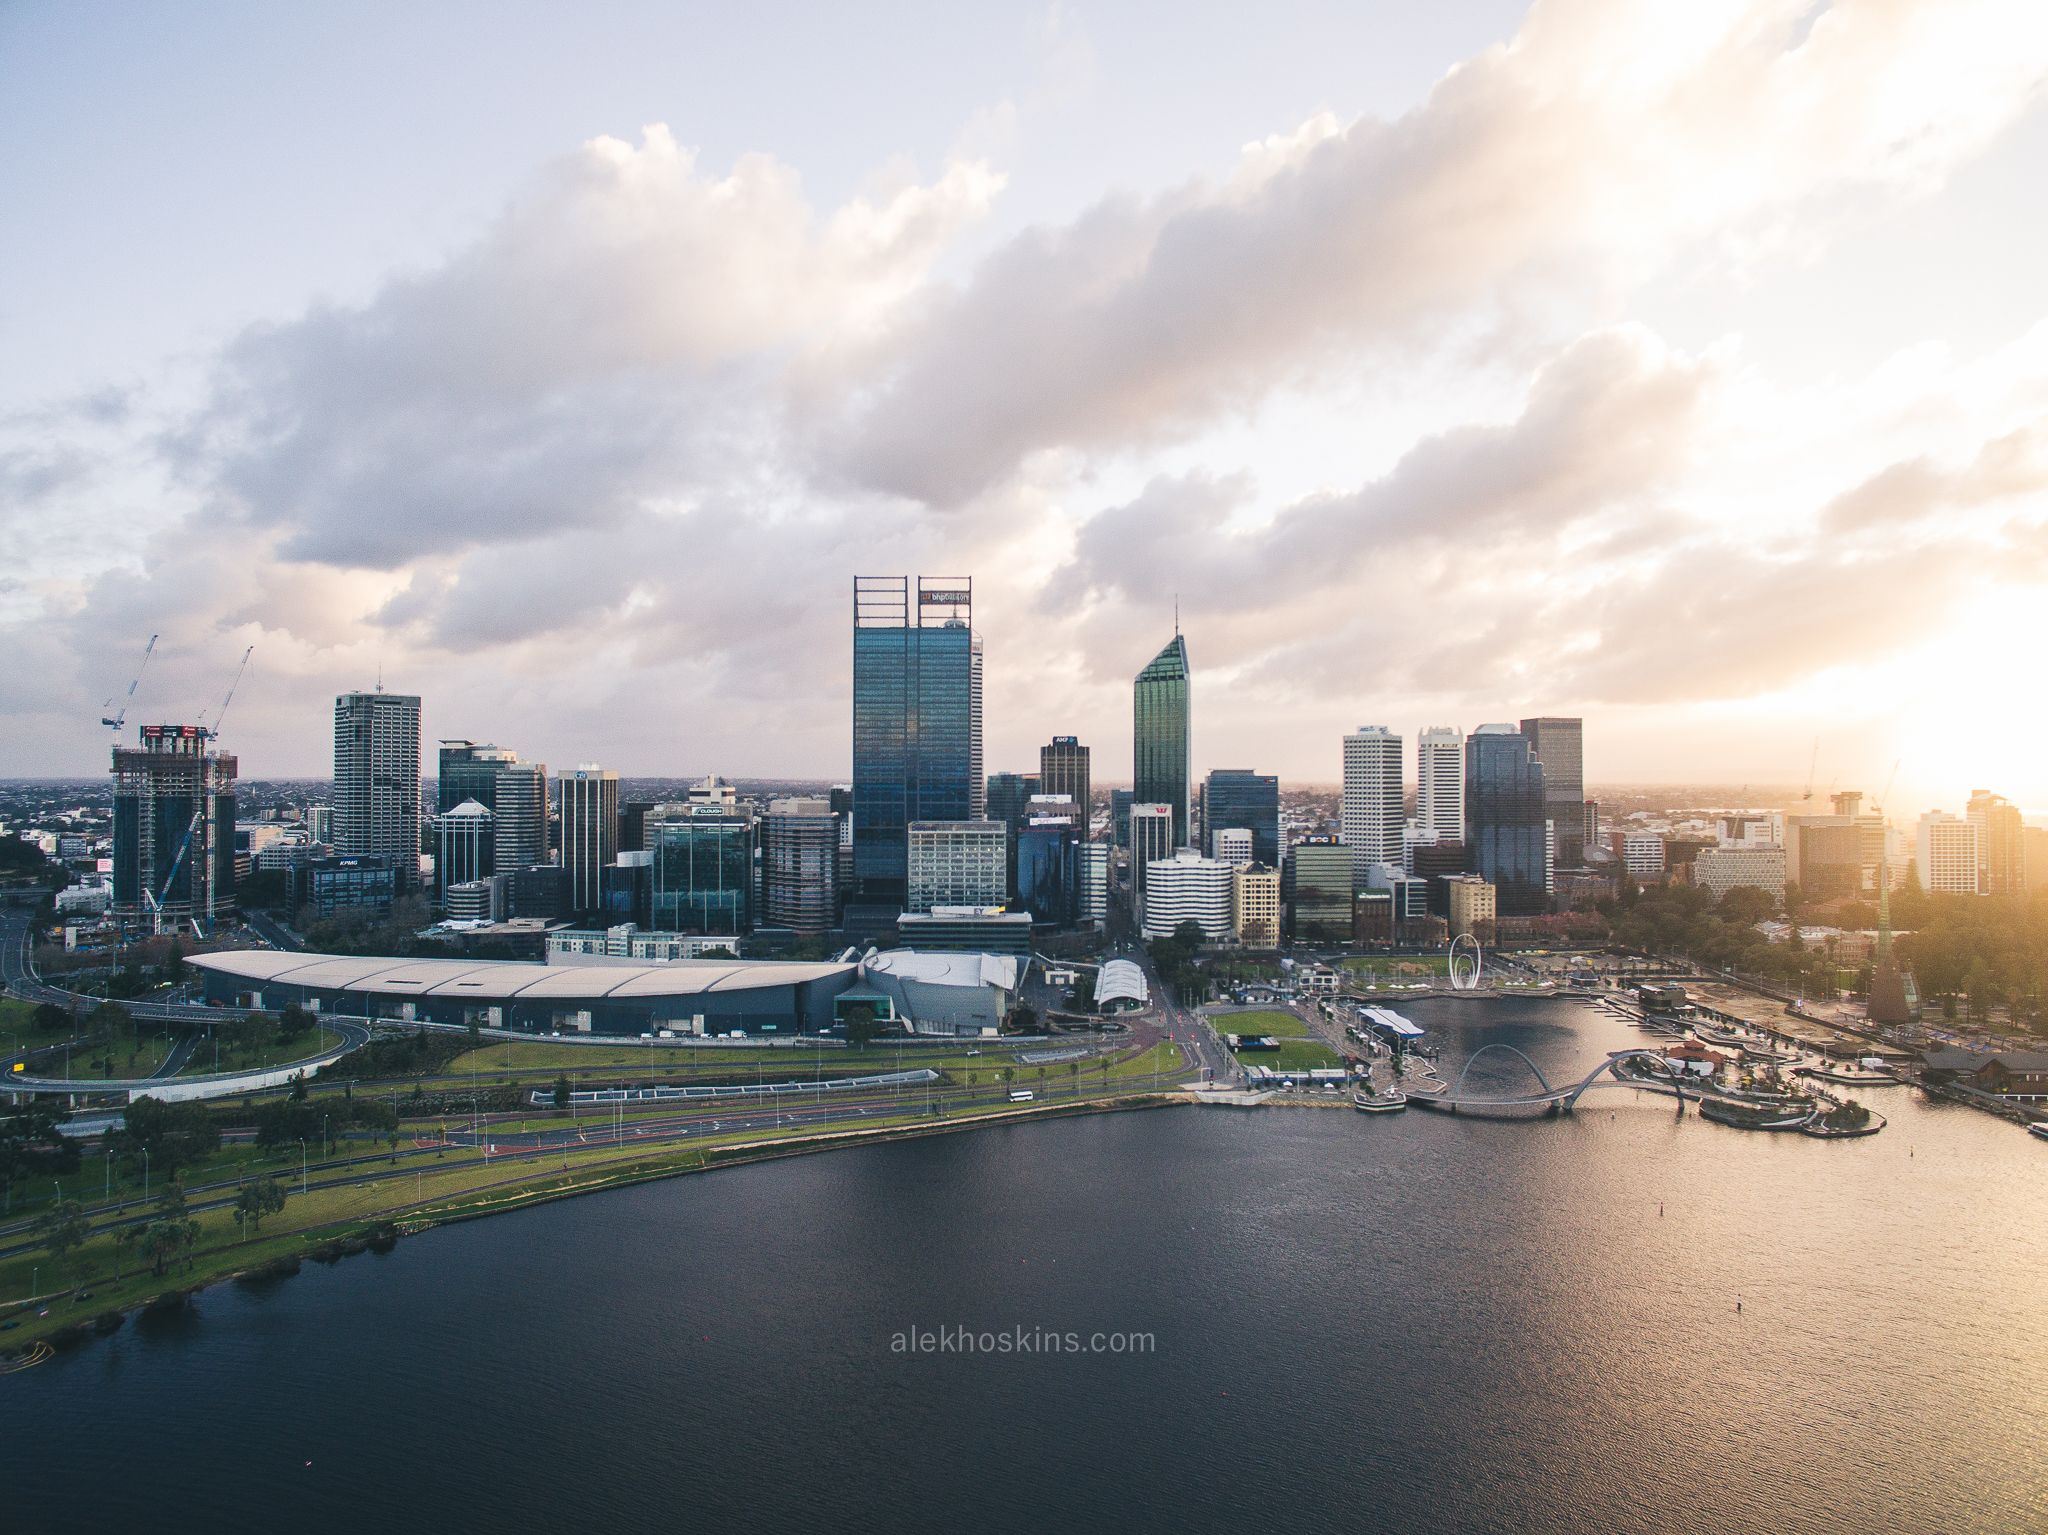 perth city drone (1 of 1).jpg